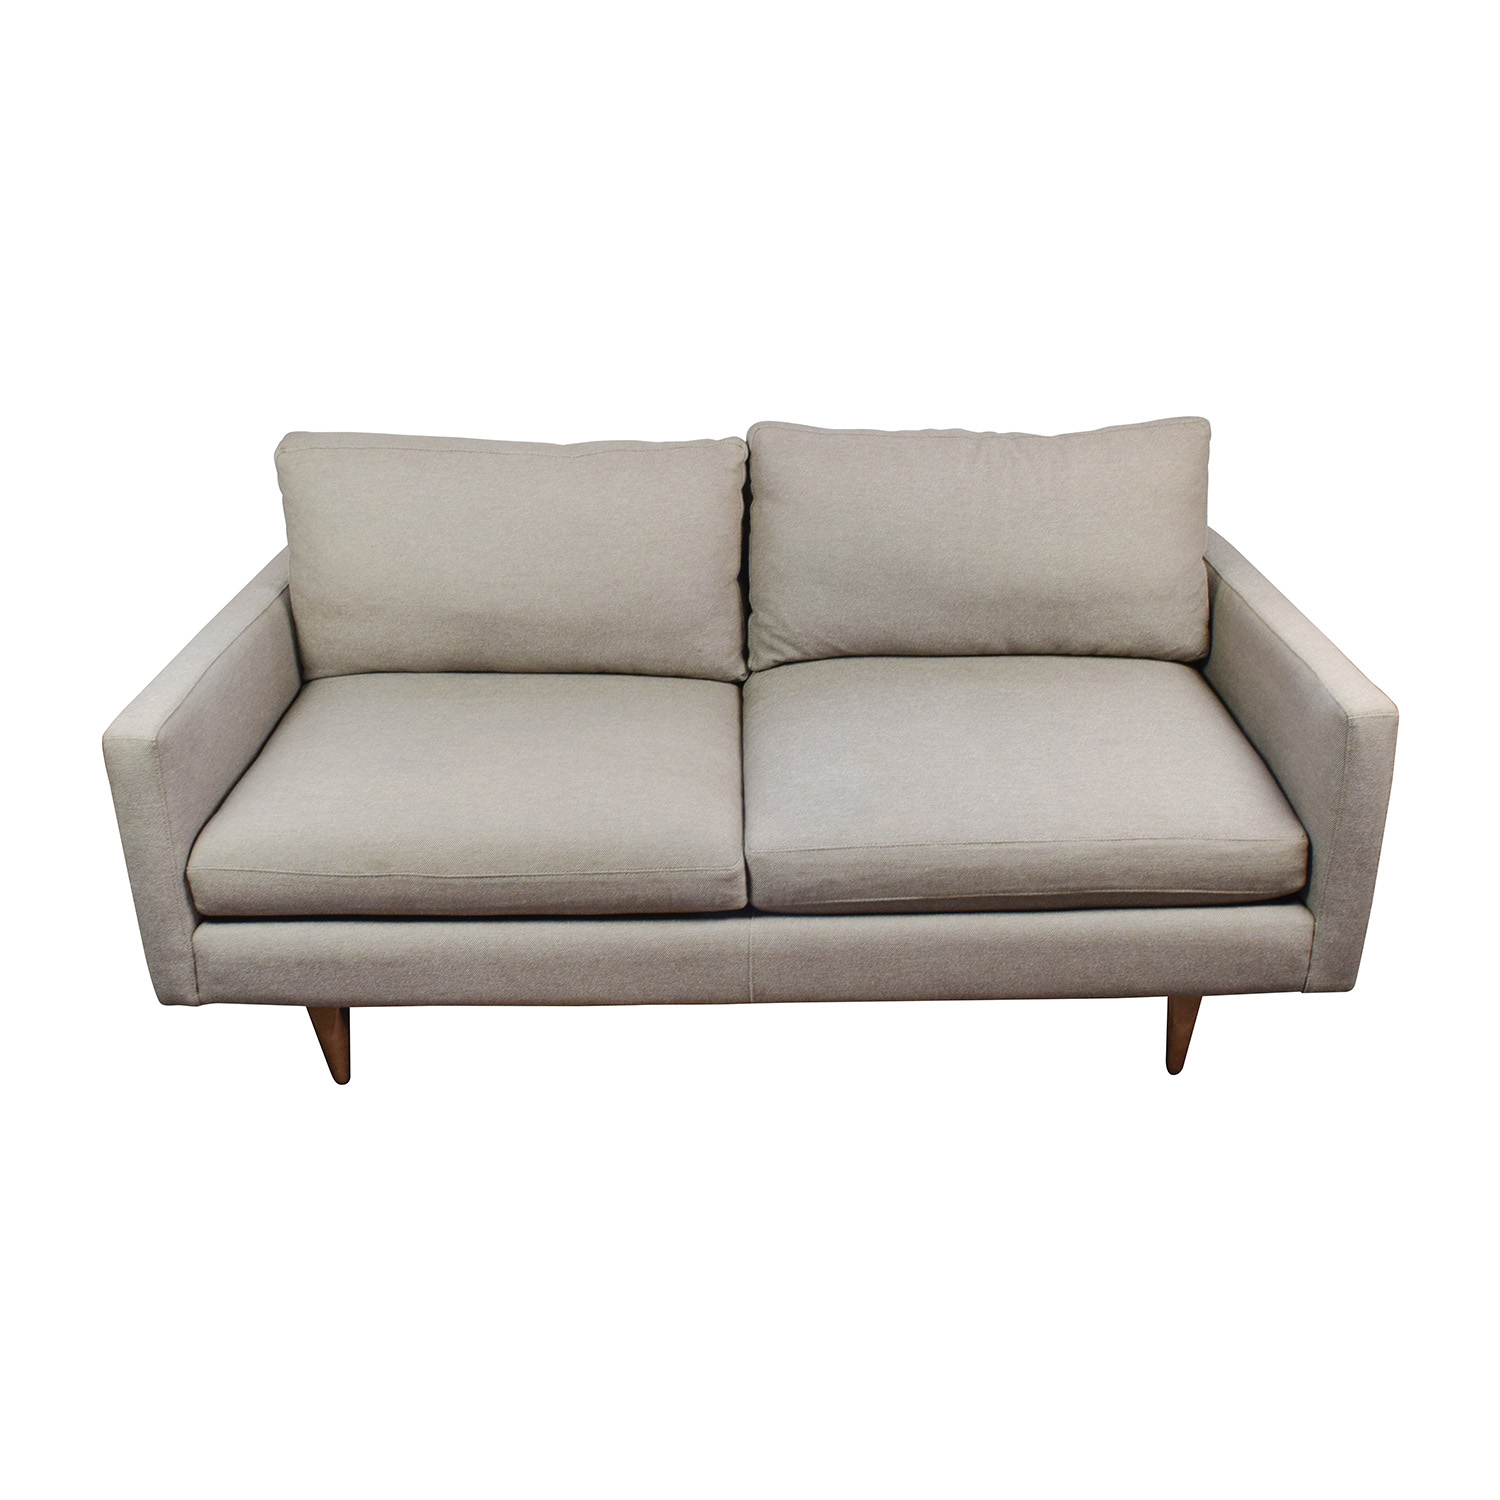 Room & Board Grey Jasper Sofa sale